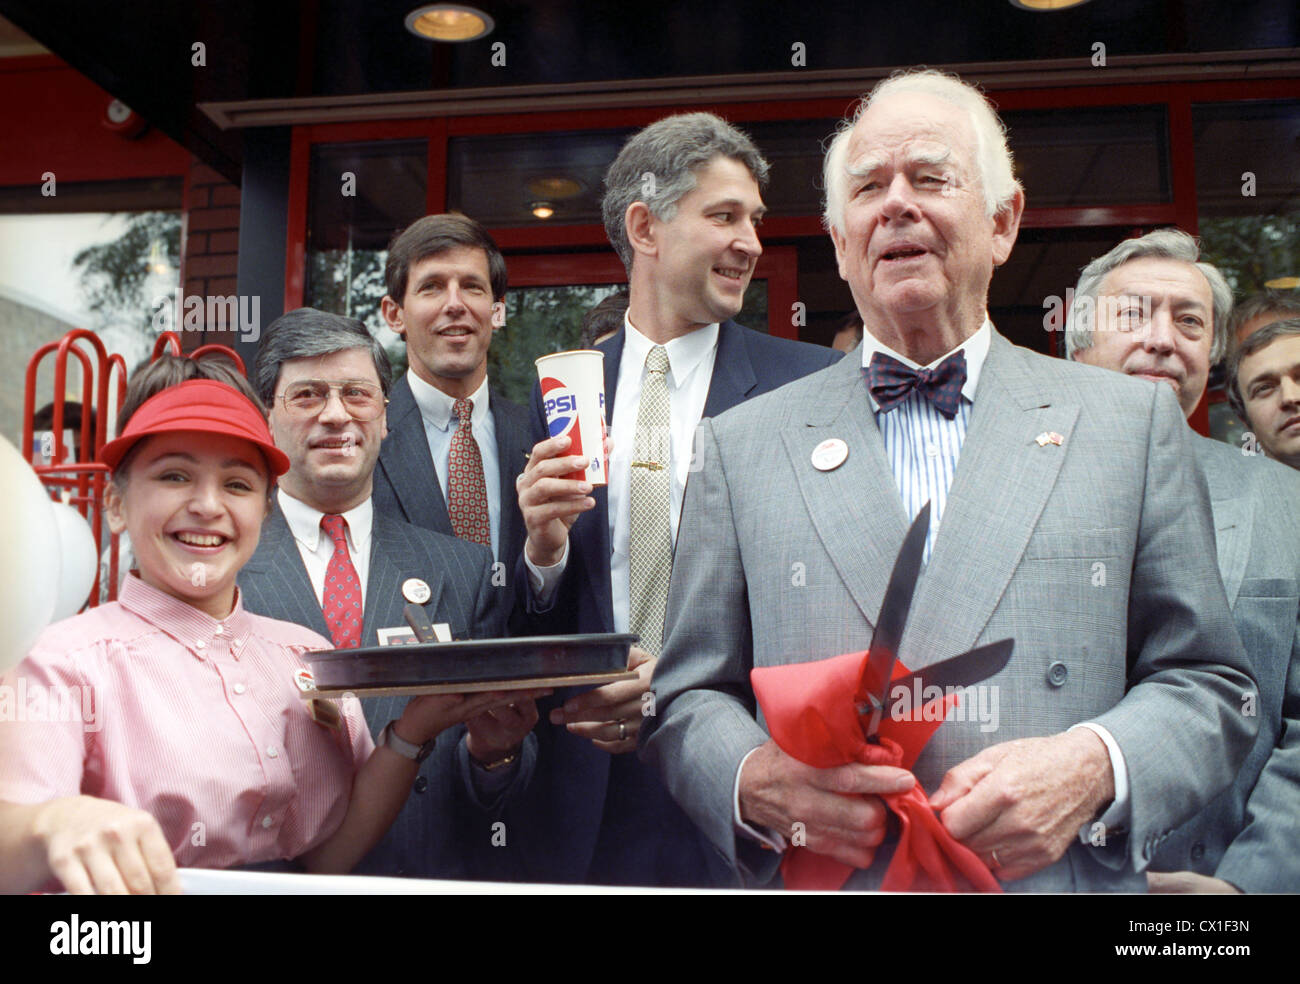 Moscow. USSR. Opening of a Pizza Hut restaurant in Kutuzov Avenue. Donald M. Kendall, CEO of PepsiCo (foreground). - Stock Image